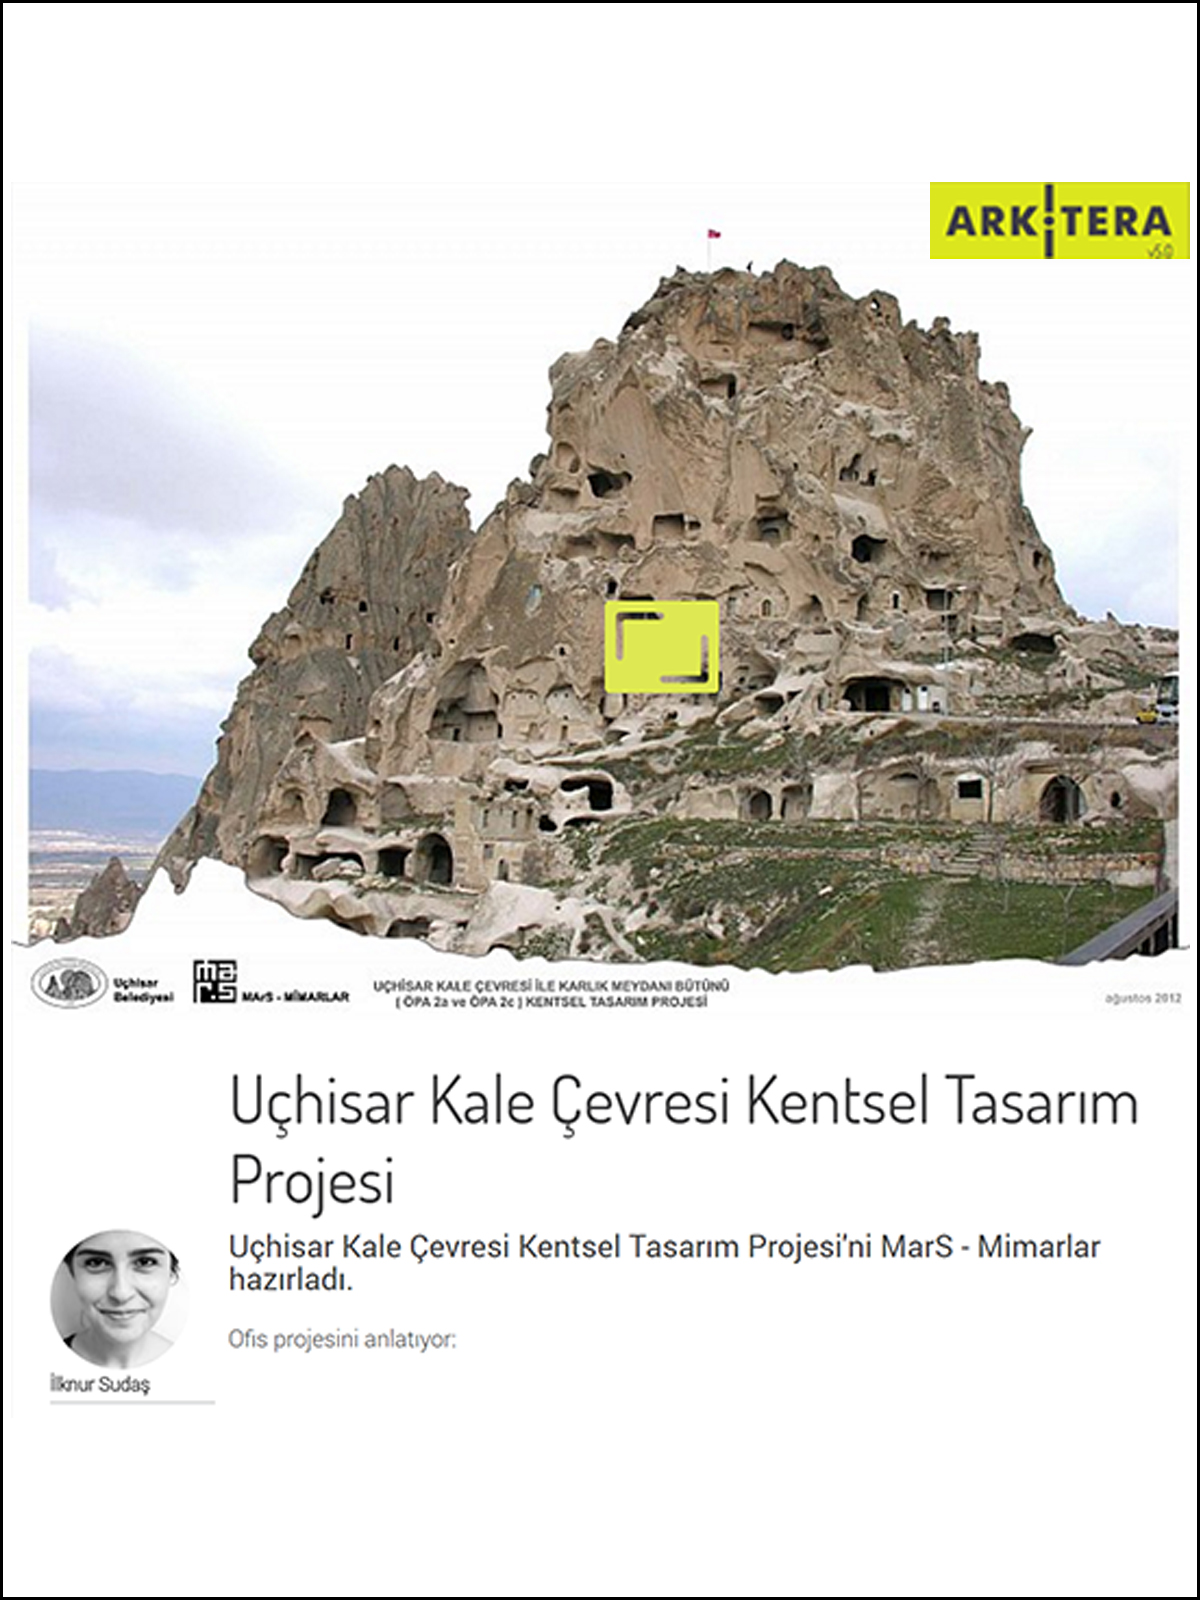 Uçhisar Urban Design Project